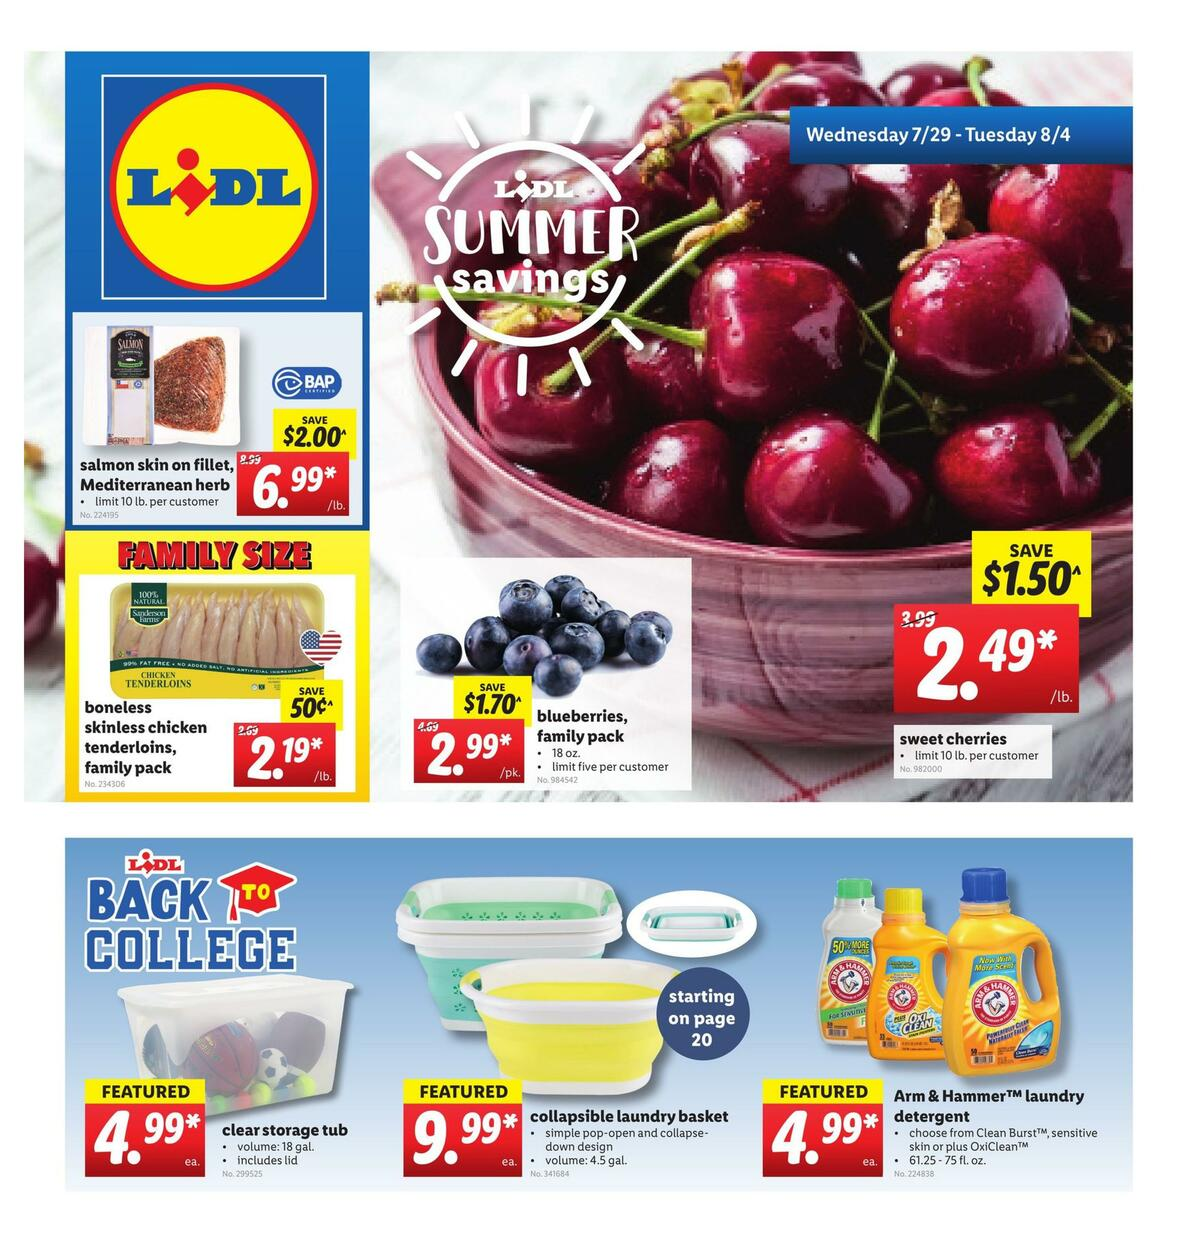 LIDL Weekly Ad from July 29